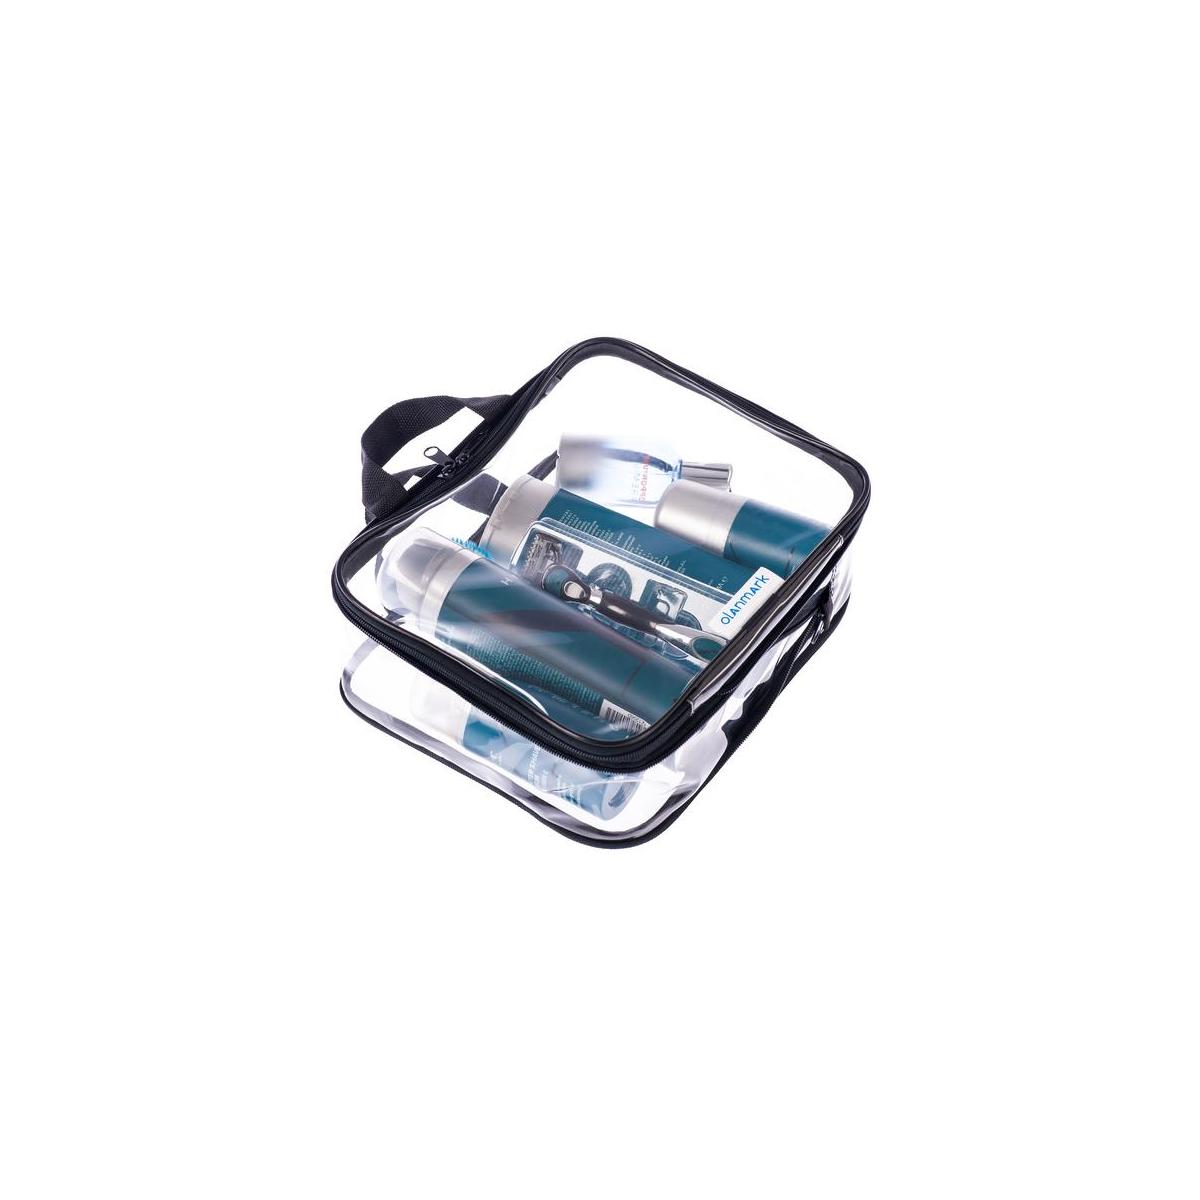 Clear Cosmetic Bag - Compression Packing Cubes - Big Travel Toiletry Bags - Large Transparent Make Up Organizer